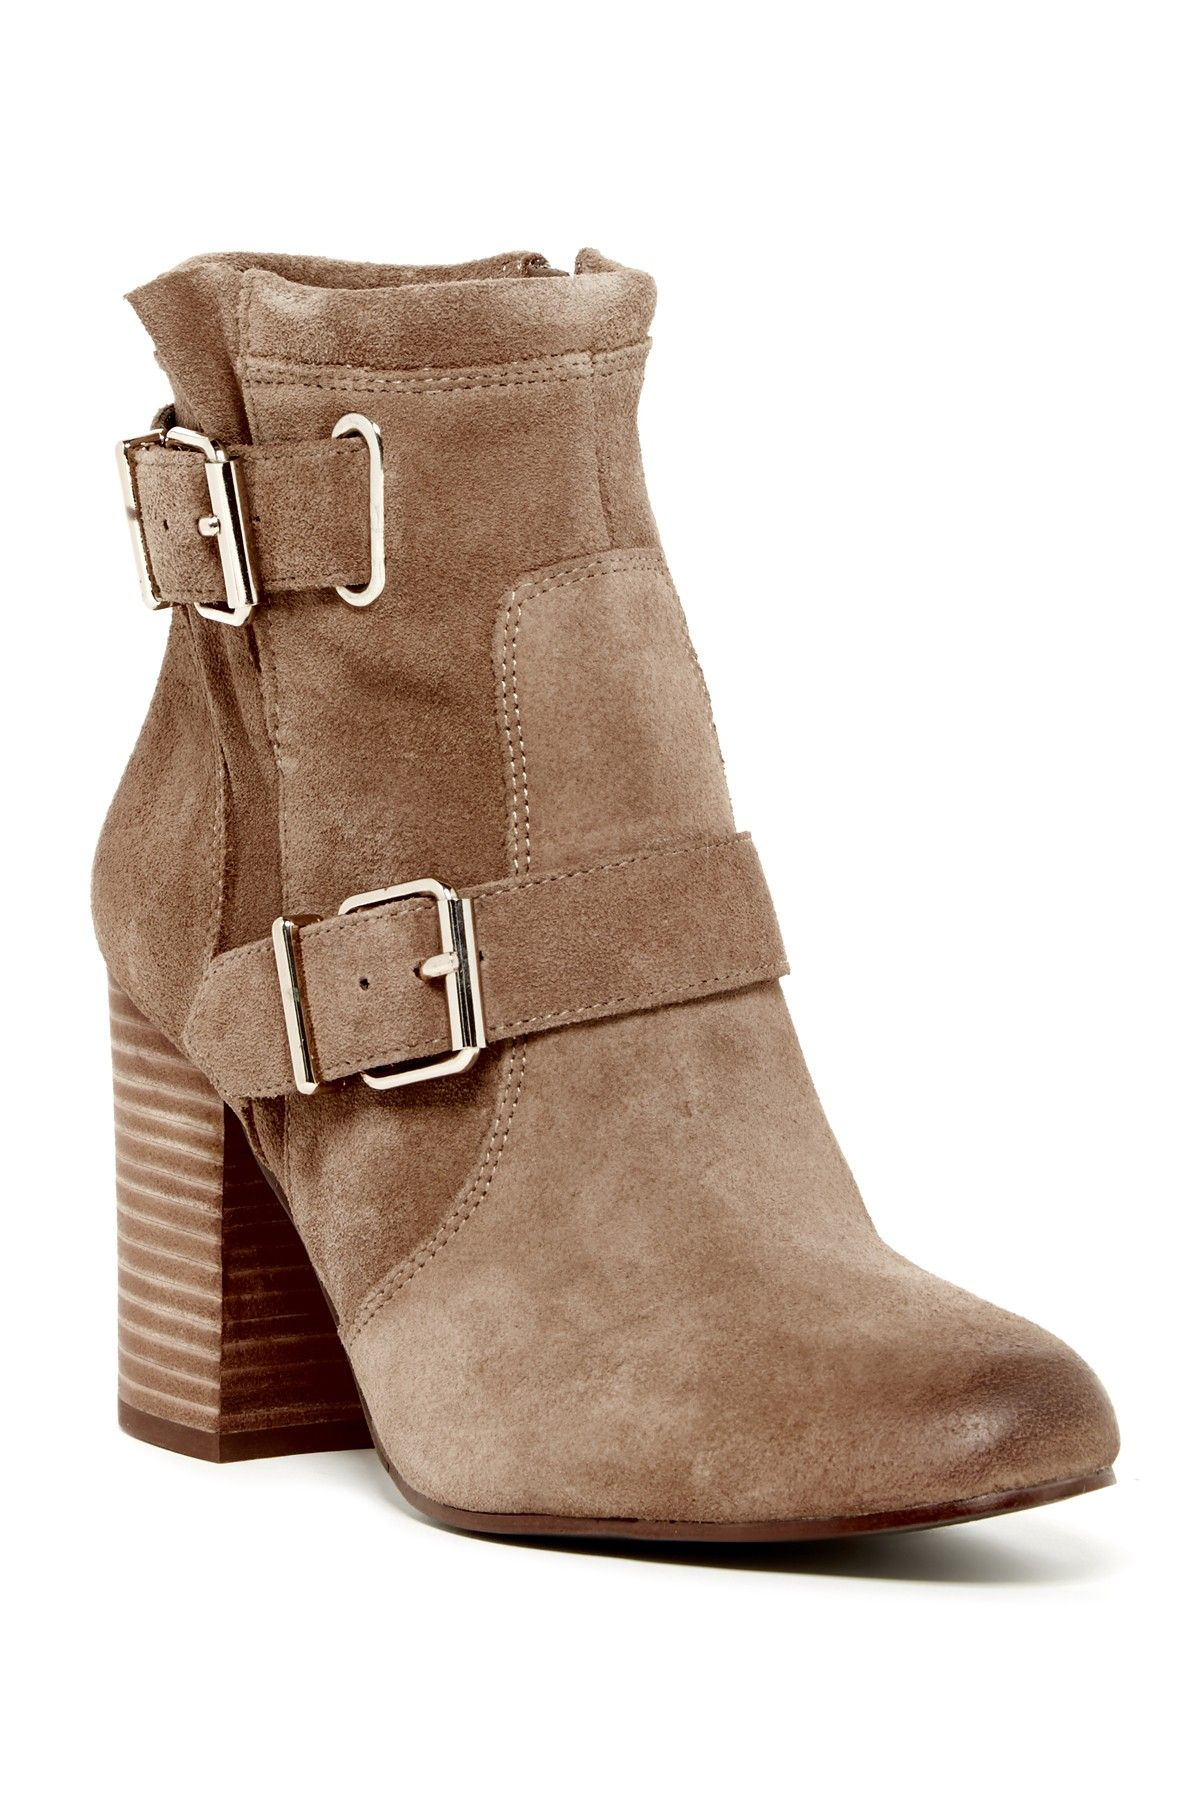 fcccddb5189e9 Vince Camuto | Simlee Buckle Bootie | shoes | Buckle ankle boots ...